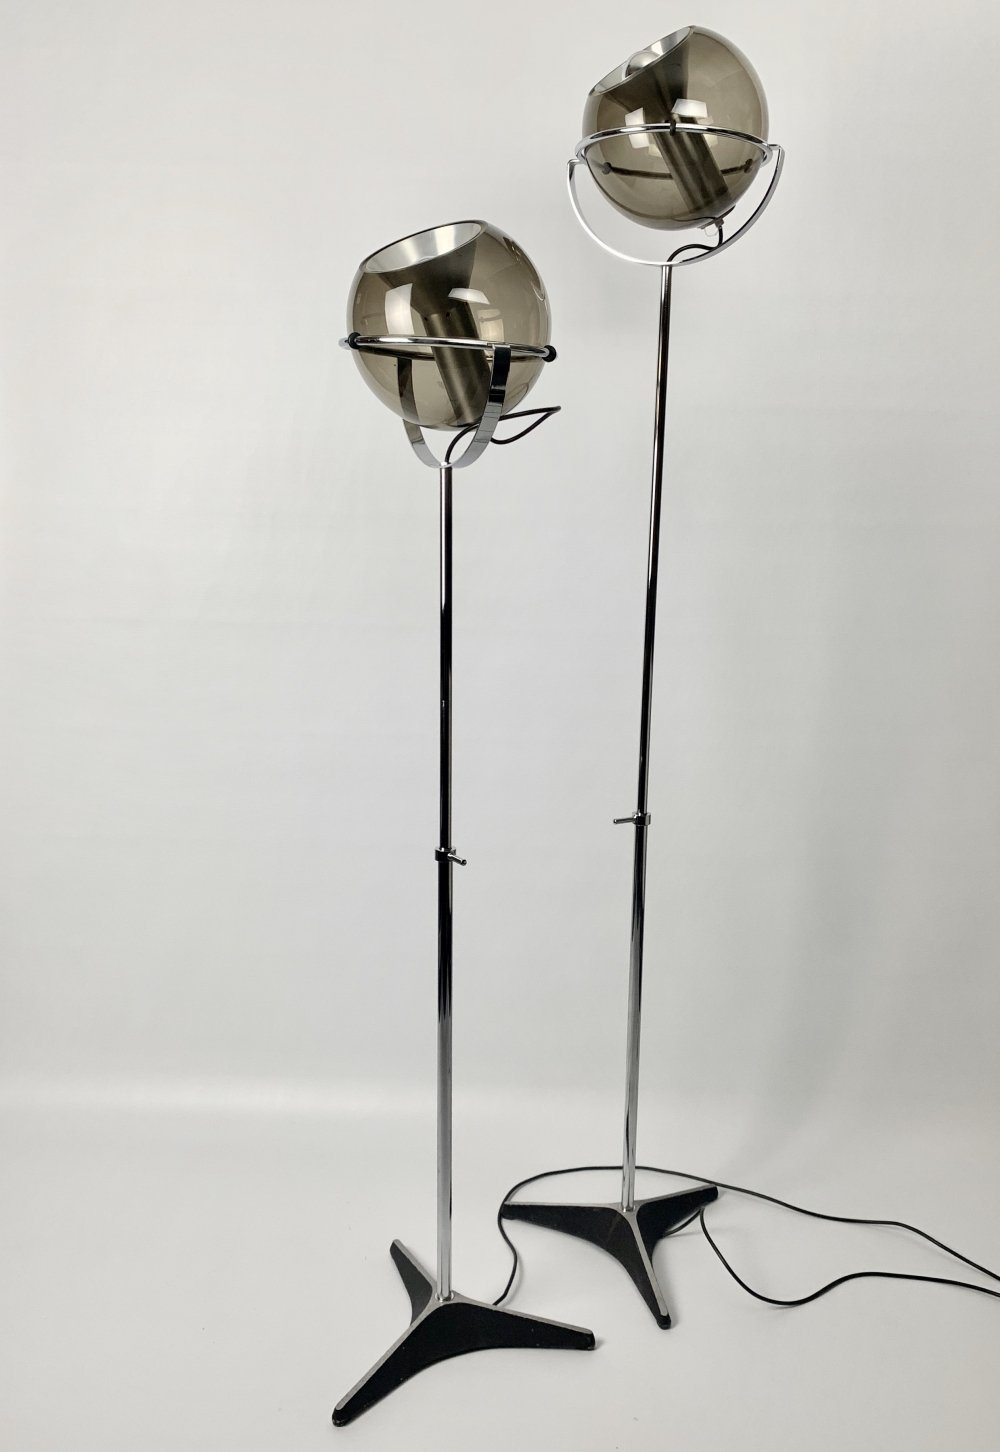 D2000 floor lamps by Frank Ligtelijn for Raak with glass globes by Peil & Putzler